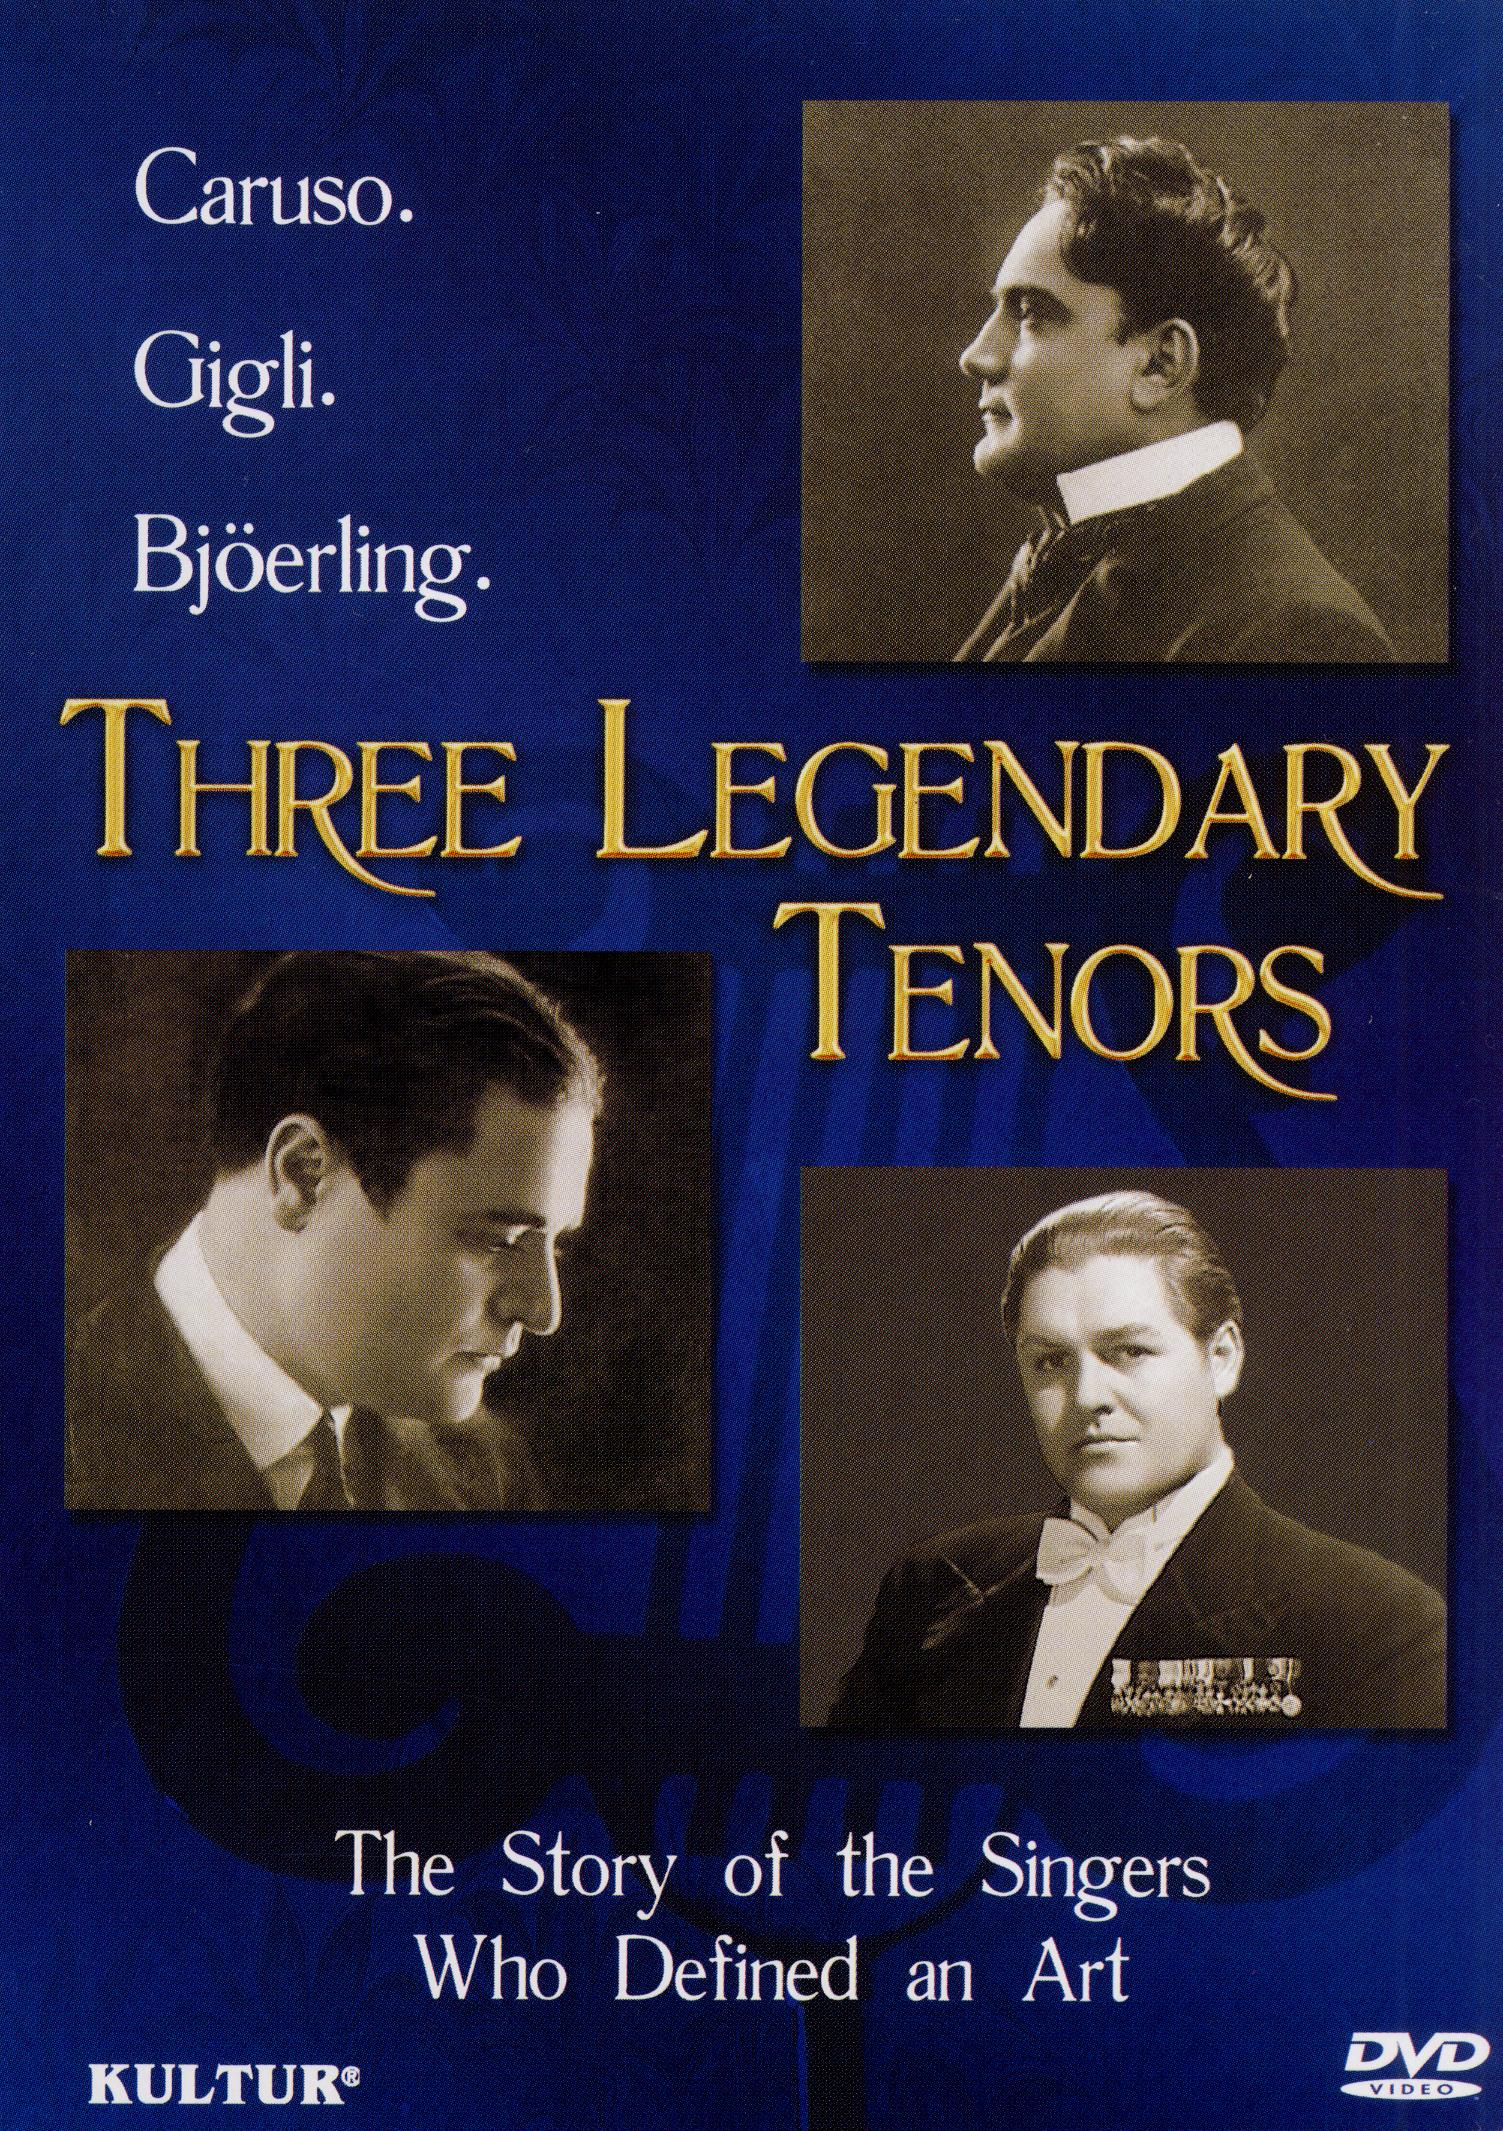 Three Legendary Tenors: The Story of the Singers Who Defined an Art